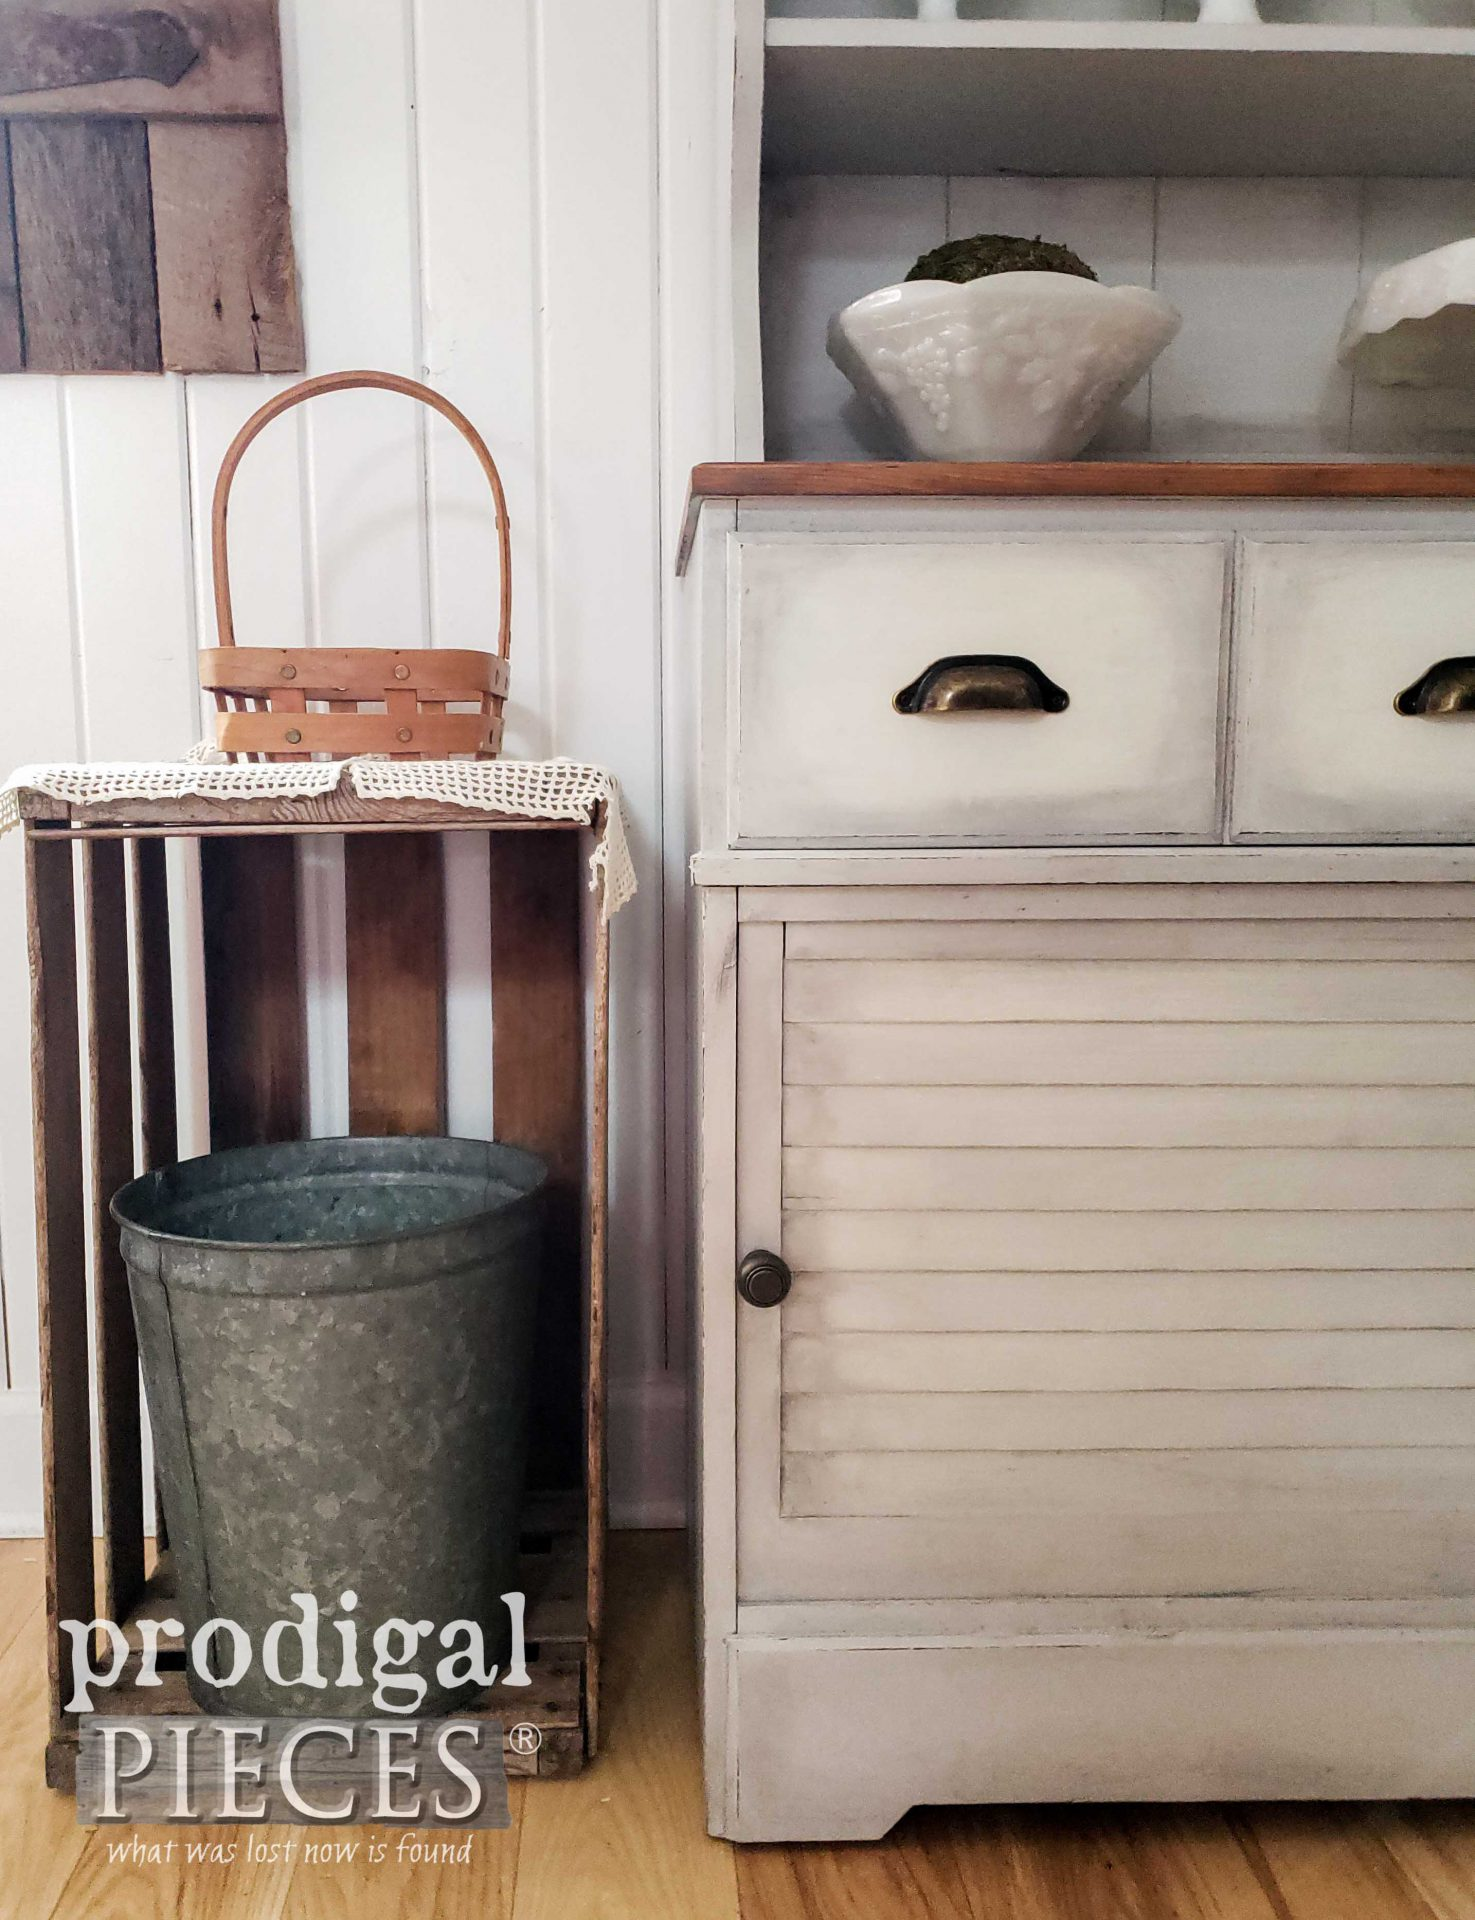 Simple Farmhouse Hutch with Louver Doors on Front and Bin Pulls on Drawers by Larissa of Prodigal Pieces | prodigalpieces.com #prodigalpieces #diy #furniture #home #farmhouse #homedecor